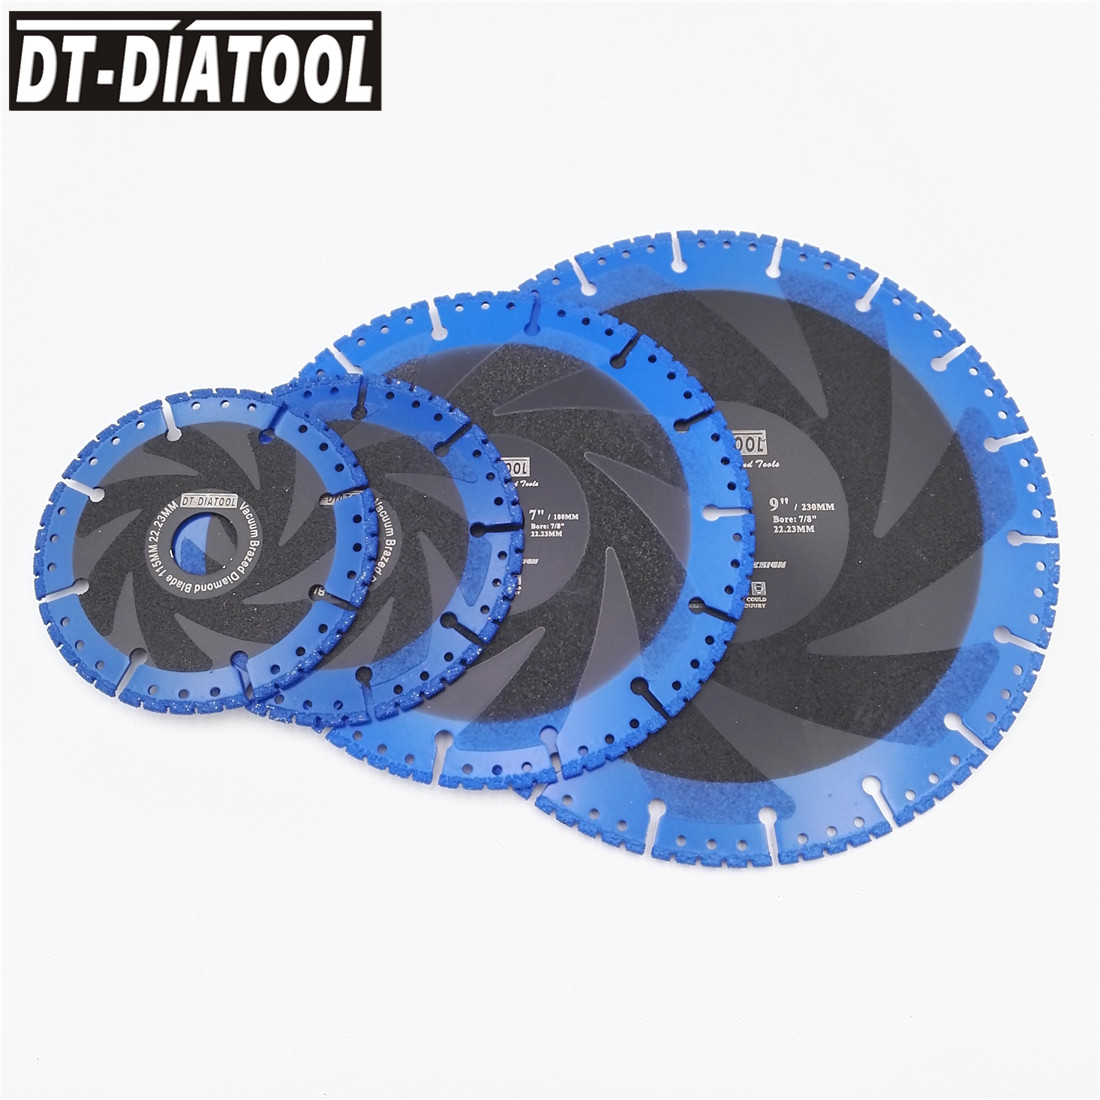 DT-DIATOOL Vacuum Brazed Diamond Demolition Saw Blade Cutting Disc Multi Purpose Rescue Blade For Cast Iron Steel Metal Plastic